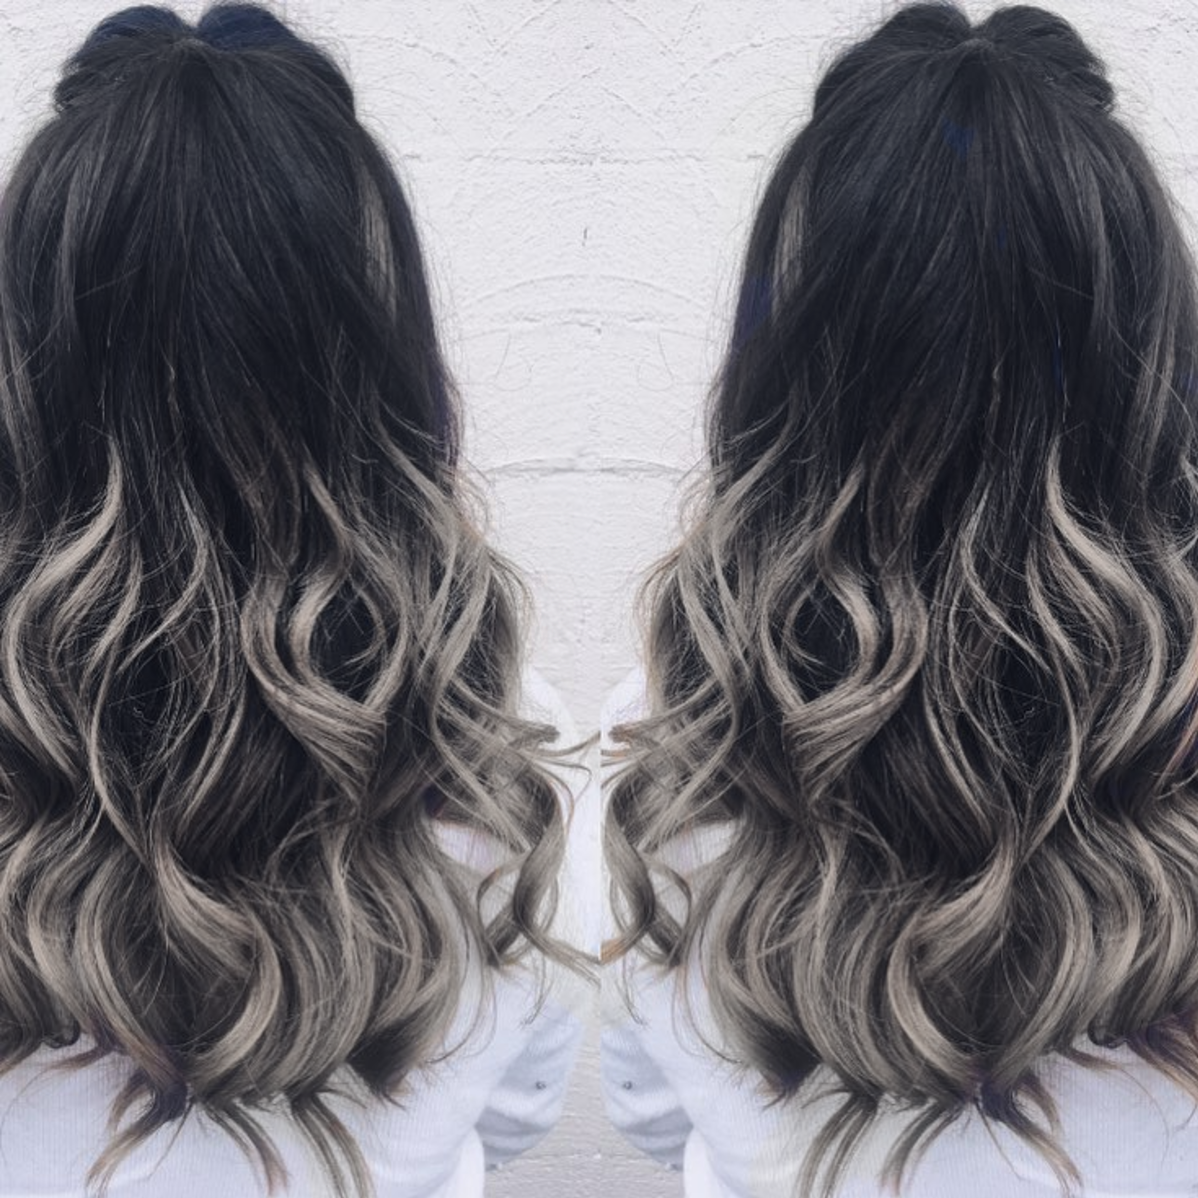 Grey And Dark Blue Bedroom Ideas: Love The Black To Grey Balayage